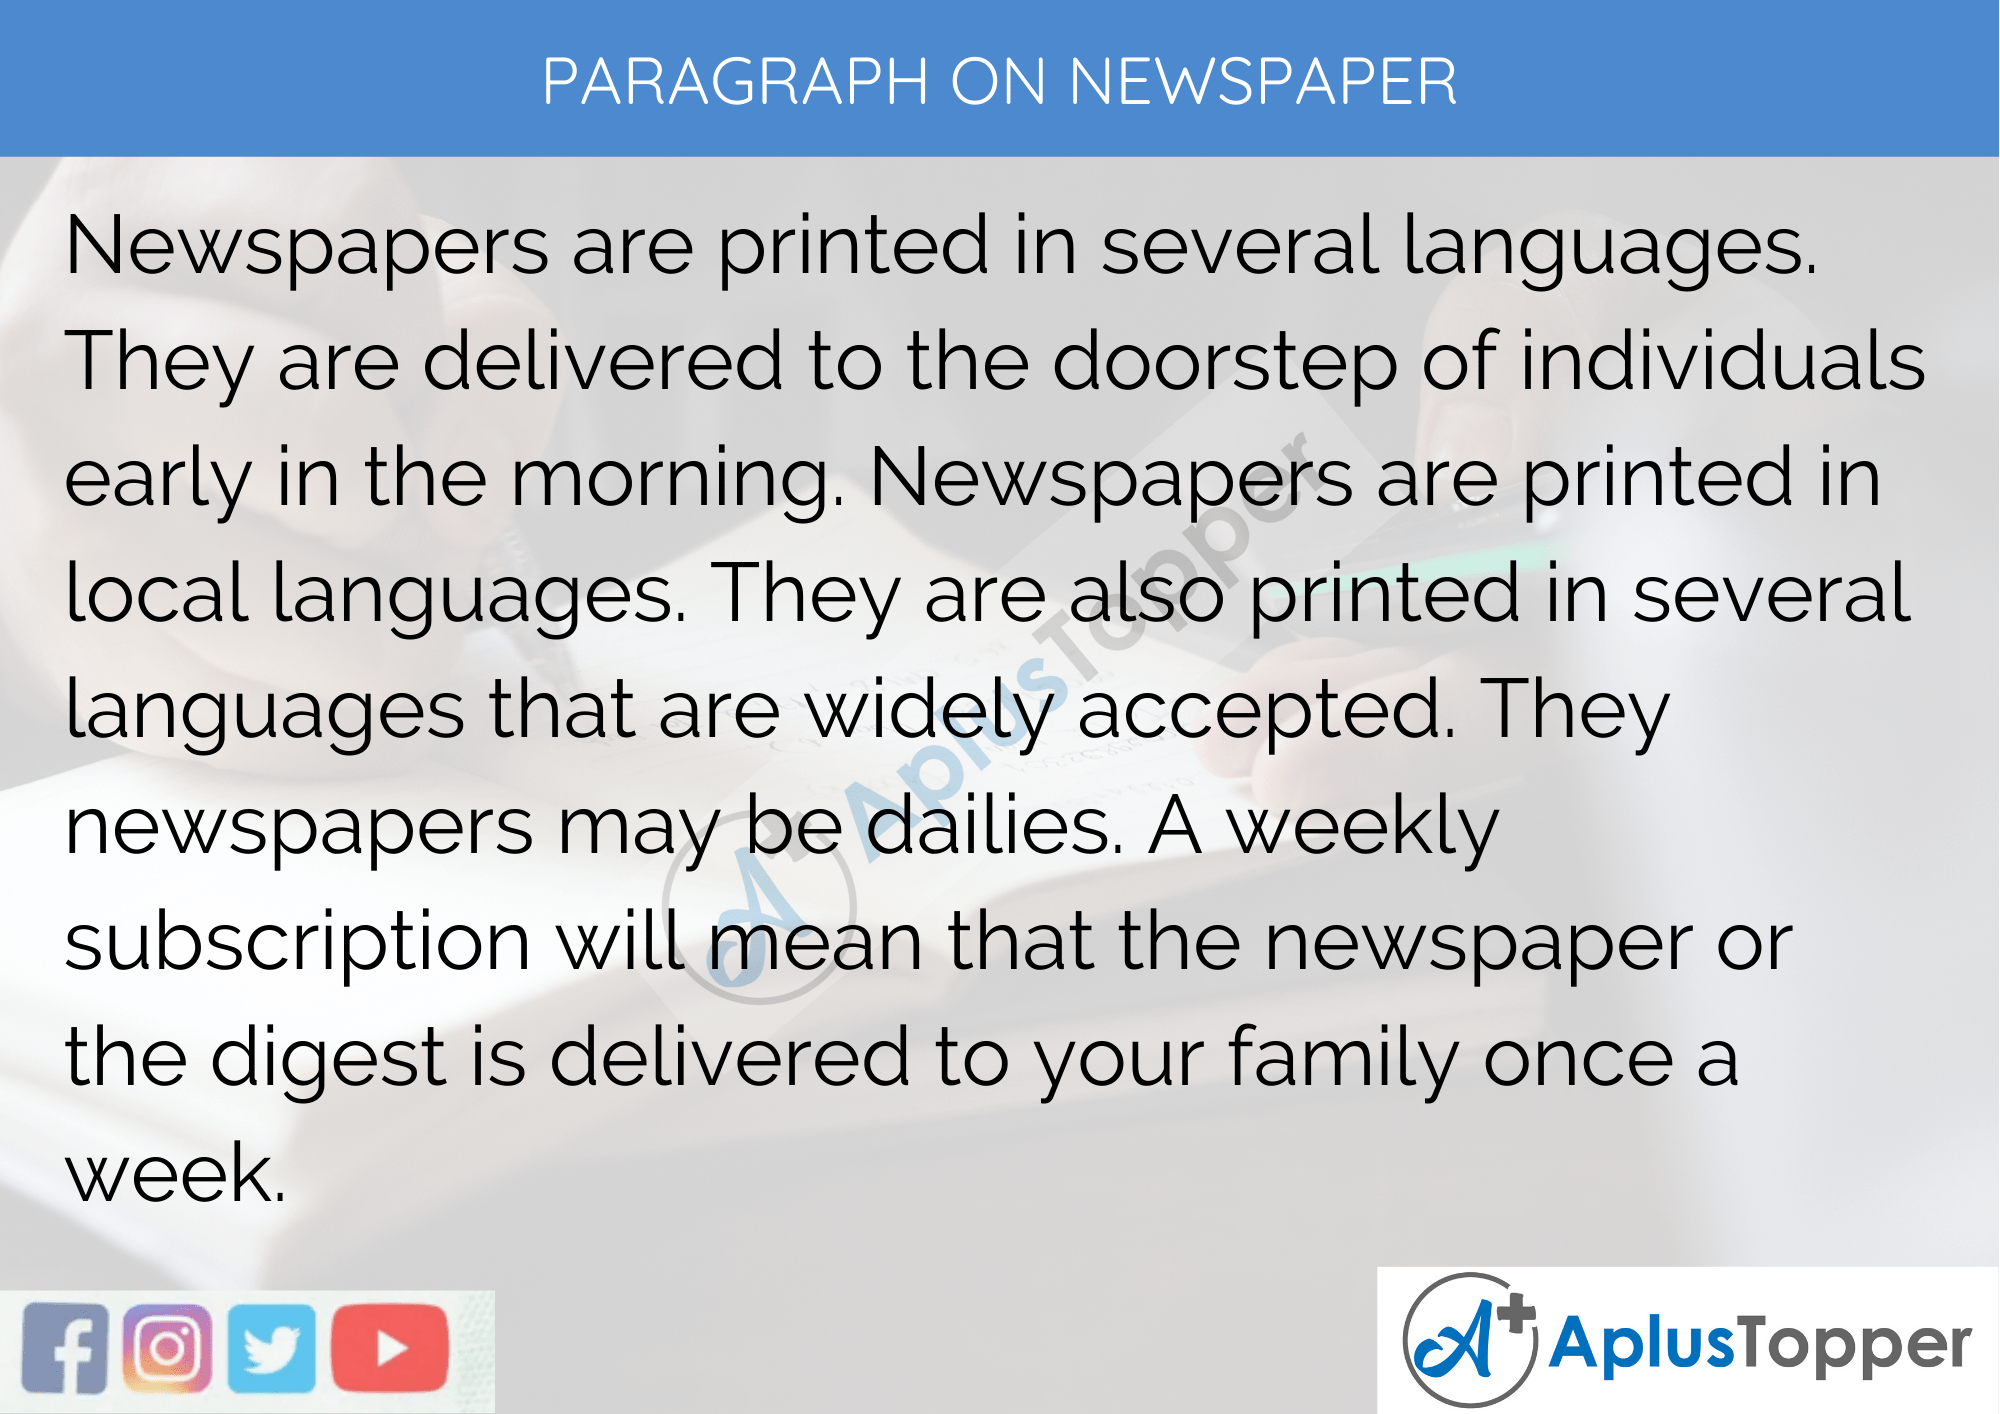 Paragraph On Newspaper - 100 Words for Classes 1, 2, 3 Kids